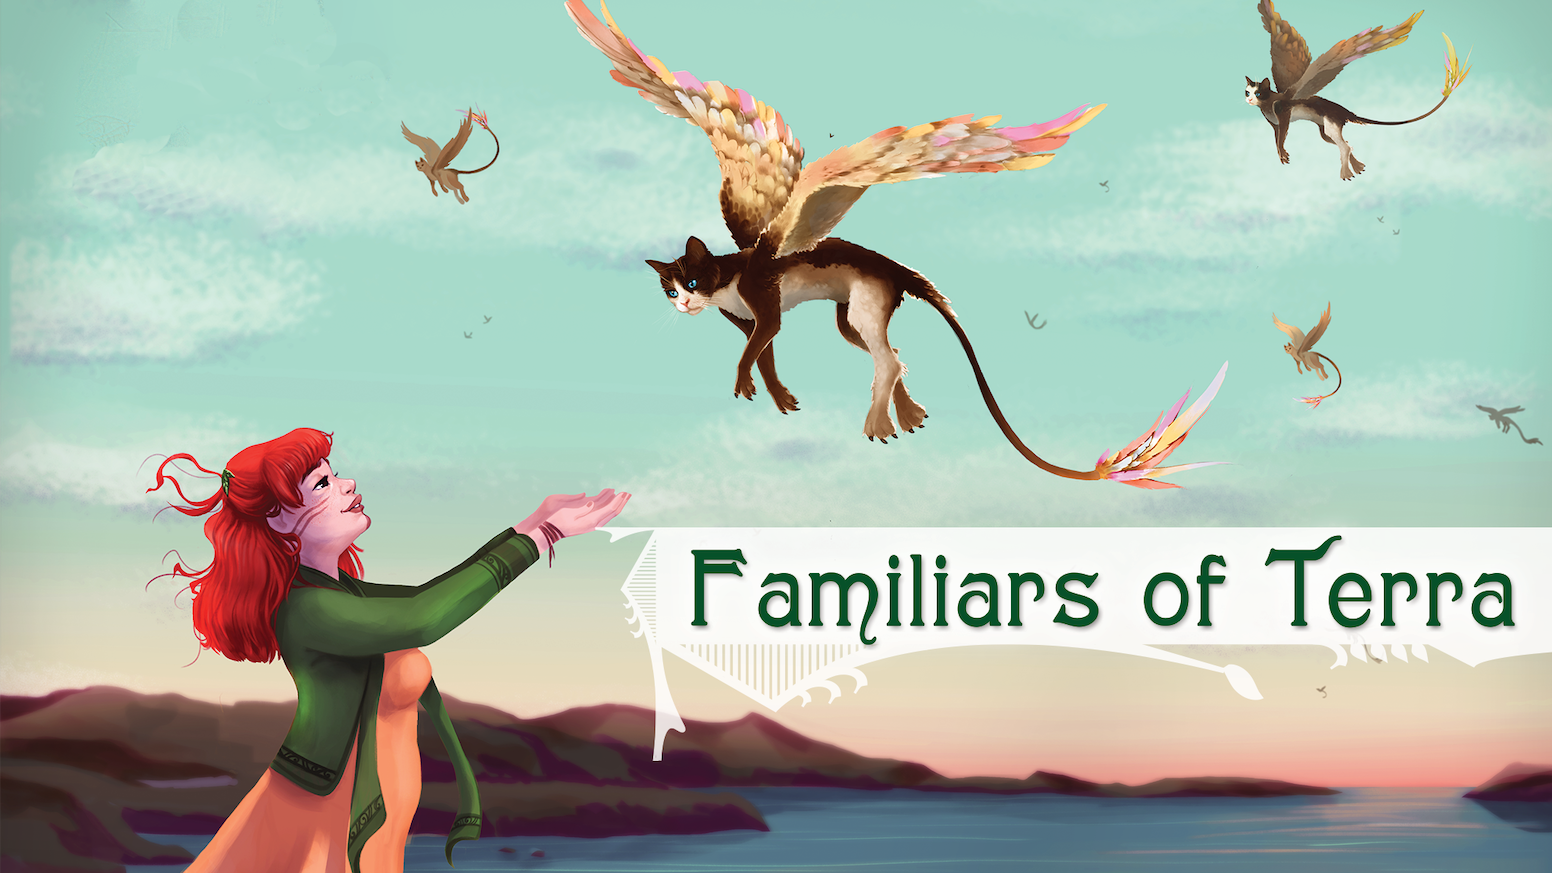 Discover Terra with your very own animal familiar in this tabletop RPG about exploration, adventure, and amazing animals.